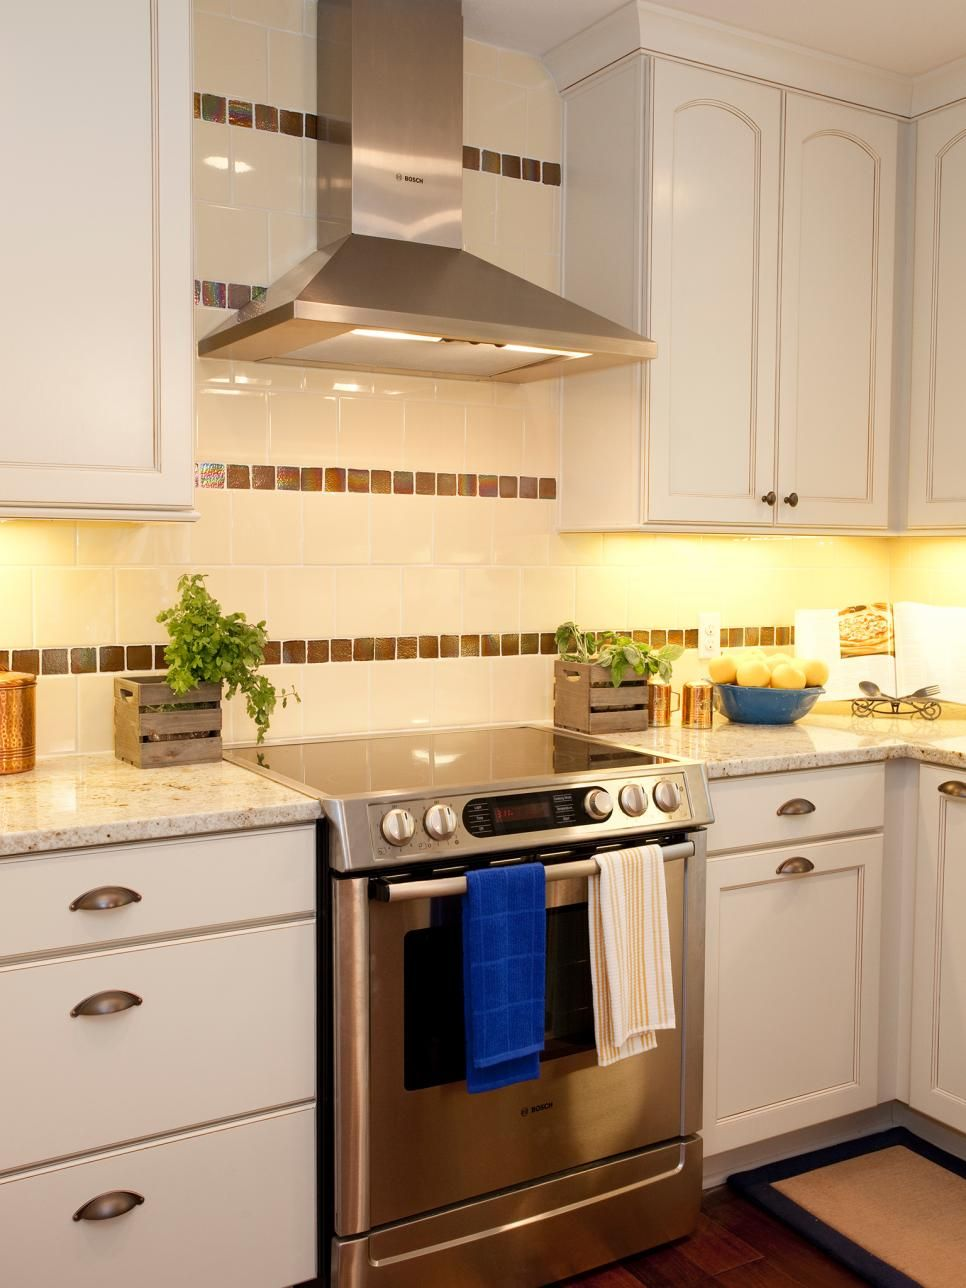 A White And Brown Striped Tile Backsplash Extends To The Ceiling Behind The Stainless Steel Range